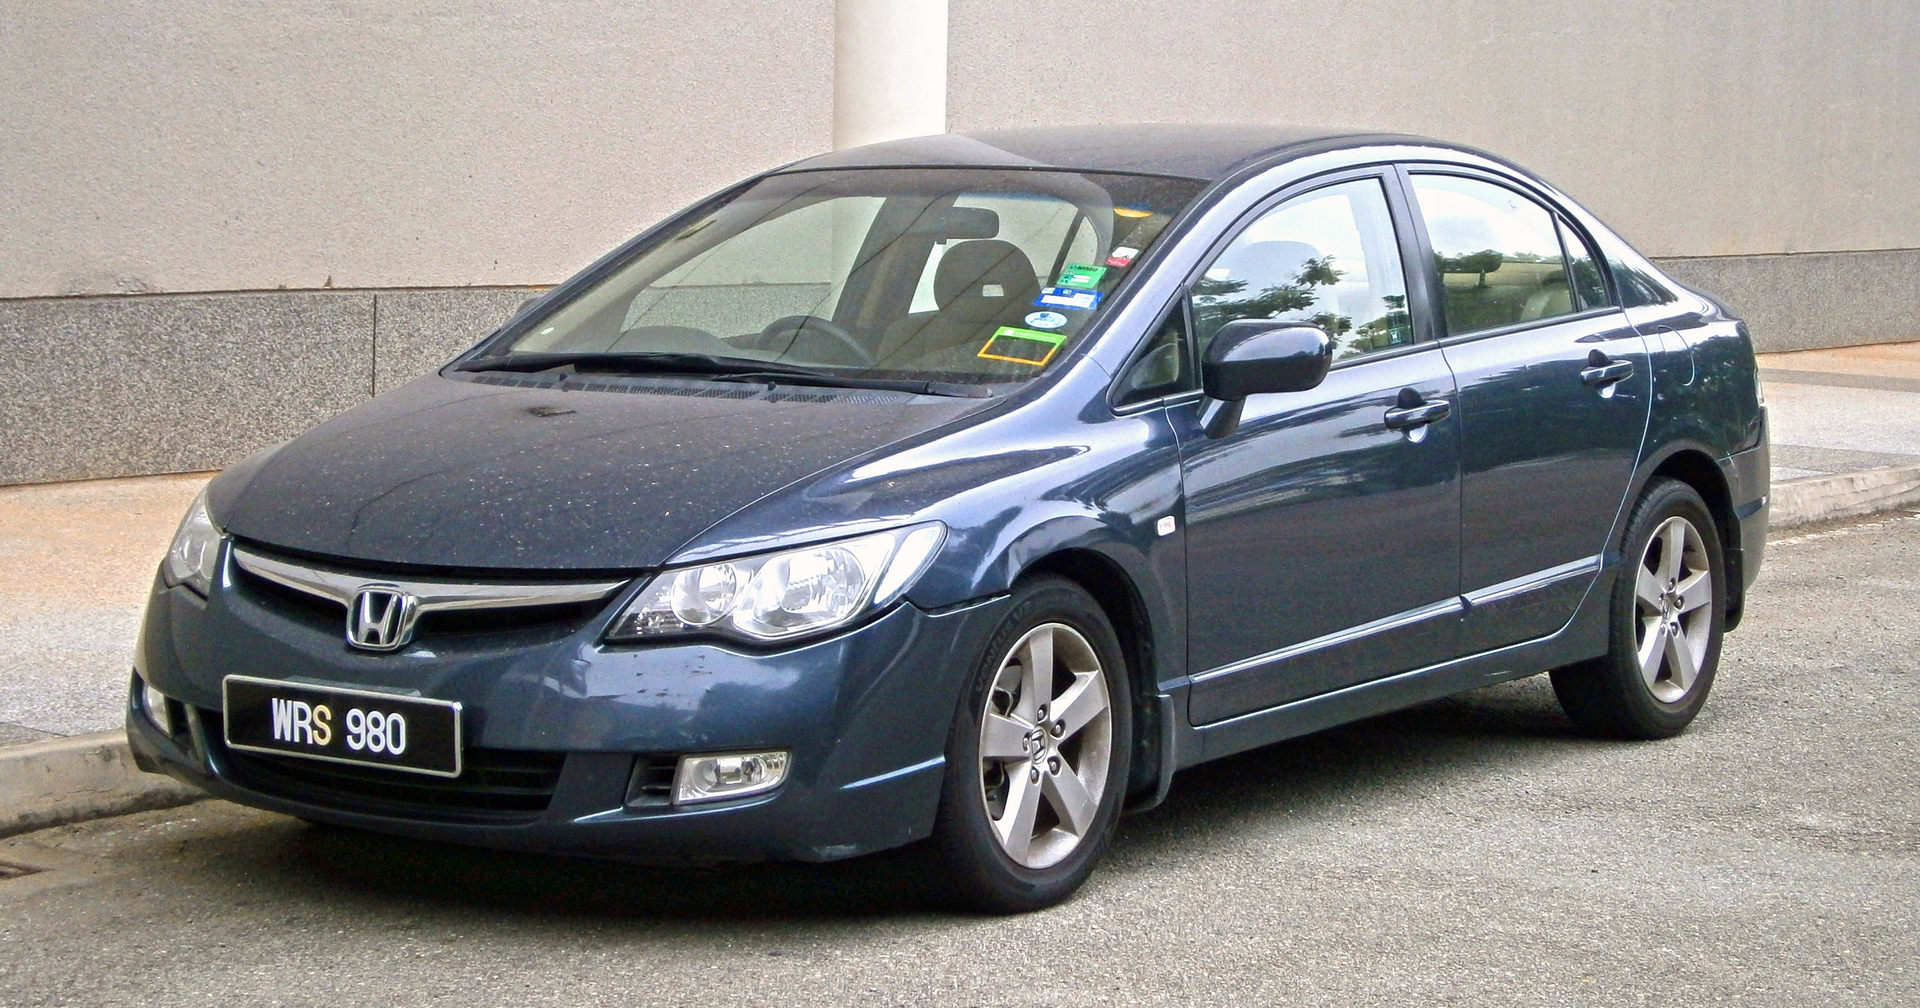 You might not have 99 problems but if you own a Proton Wira